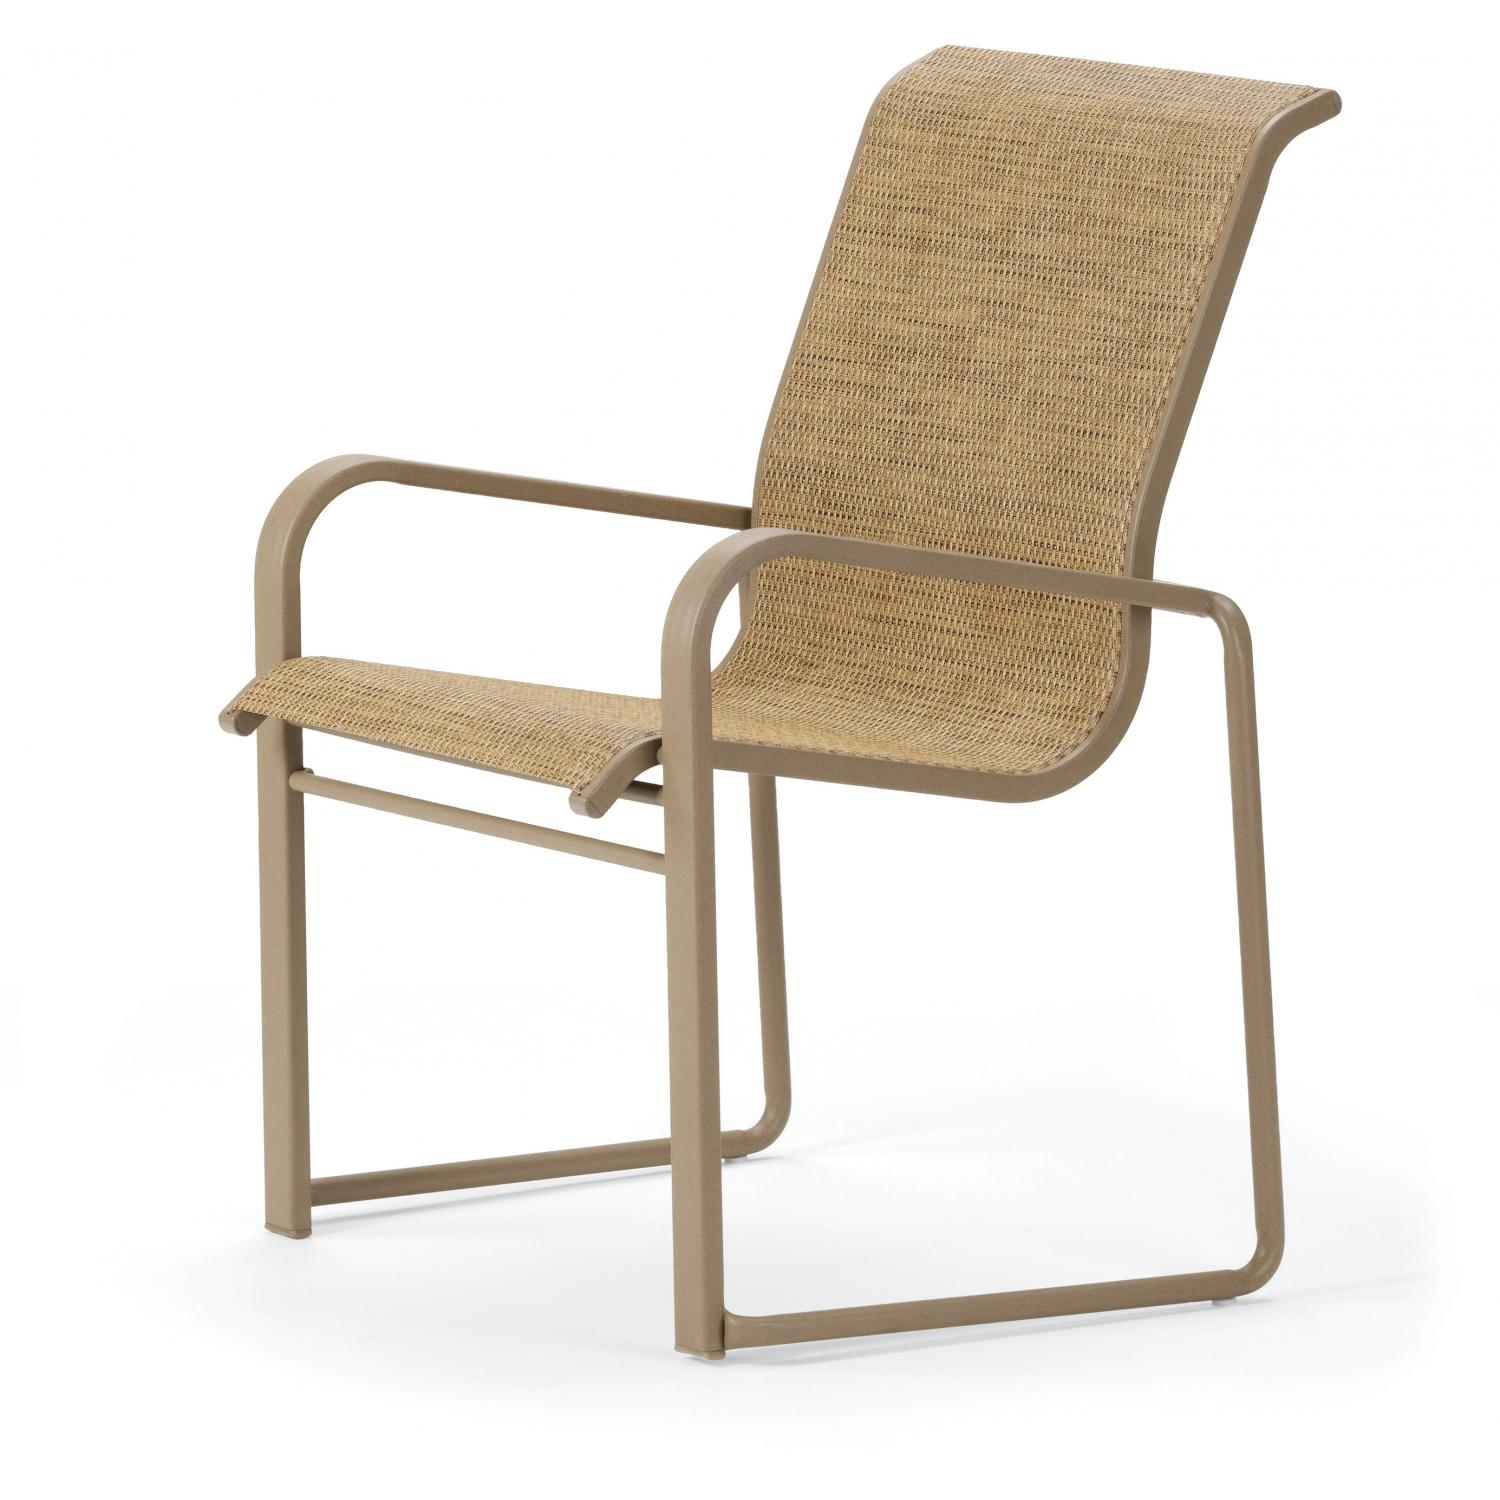 Image of: Simple Patio Sling Chairs